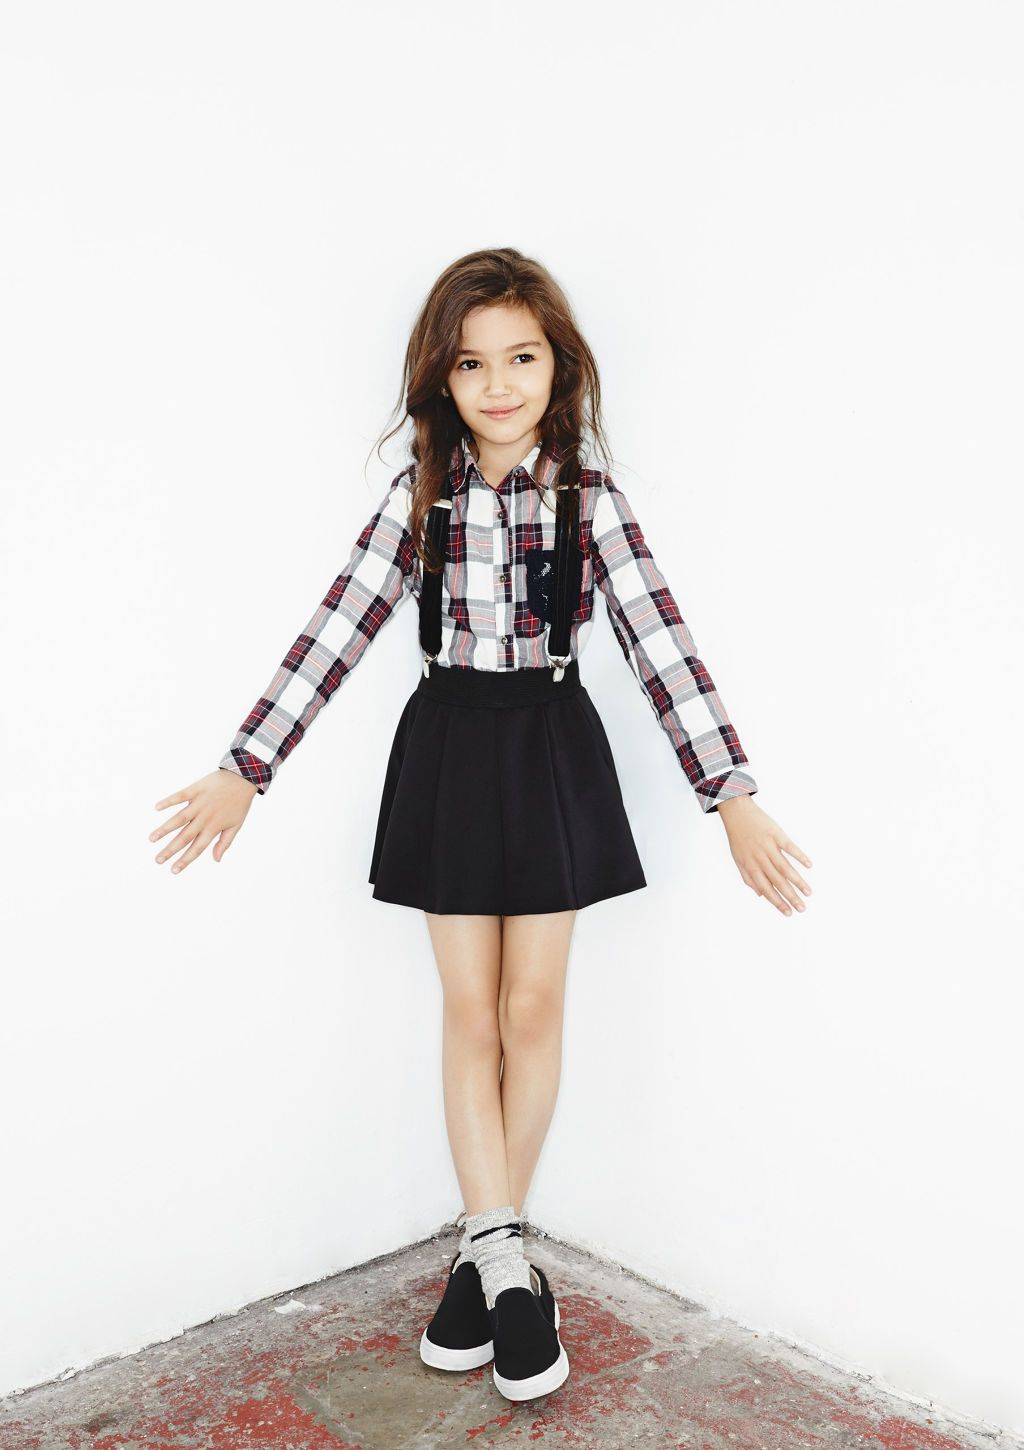 Http://www.zara.com/us/en/lookbook/kids/november-c514002